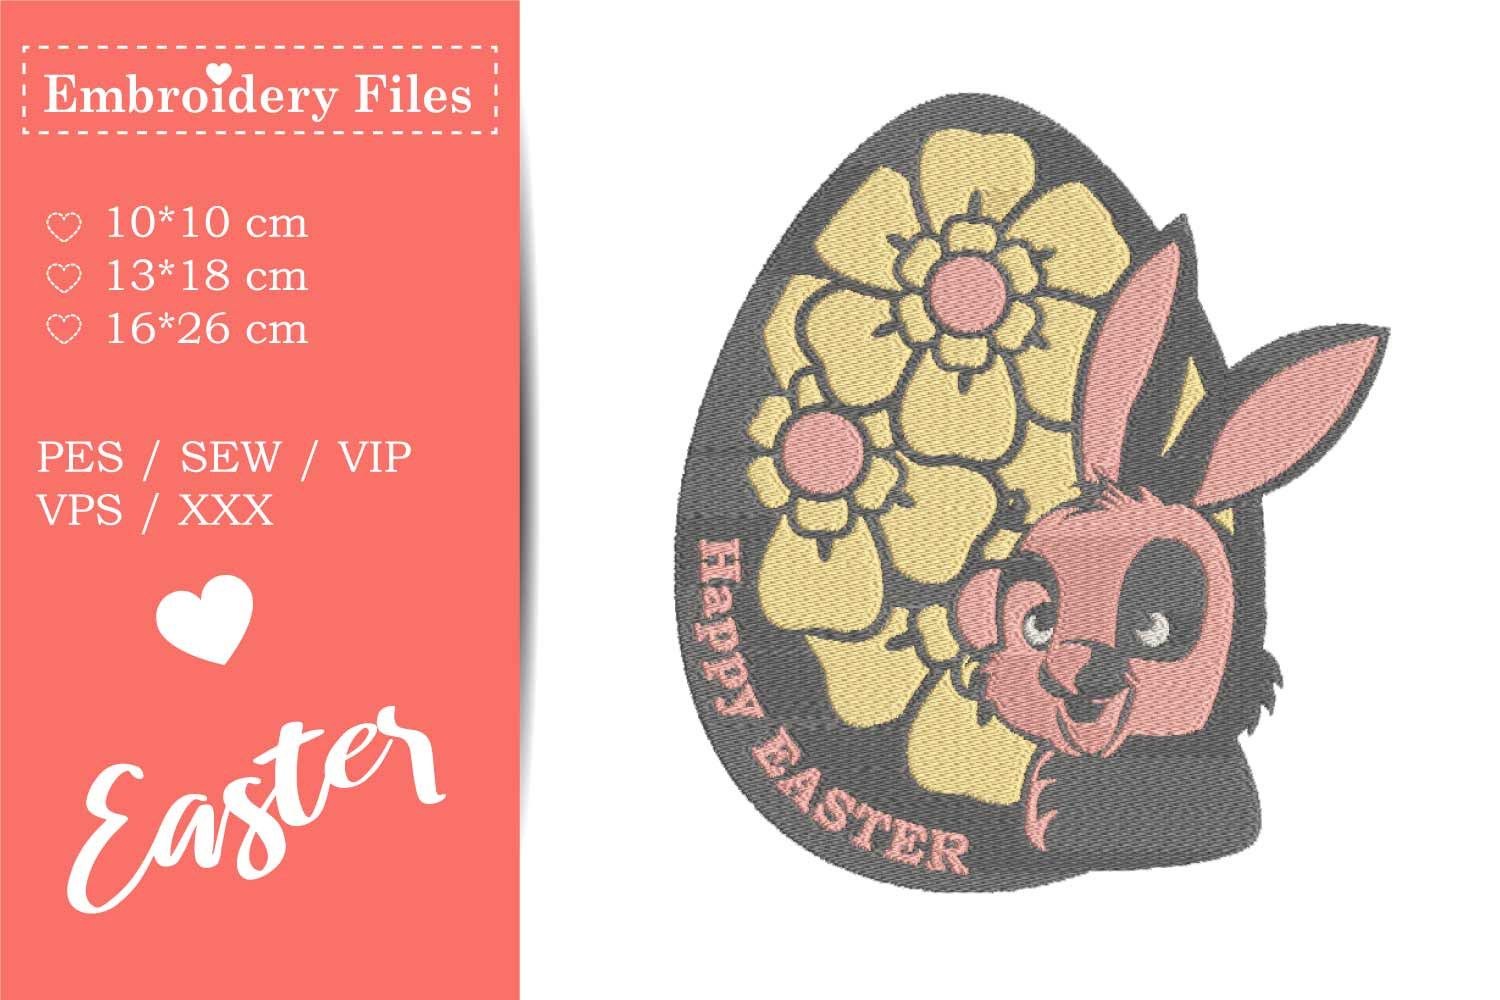 Cute Easter Bunny in an Egg - Embroidery File example image 1